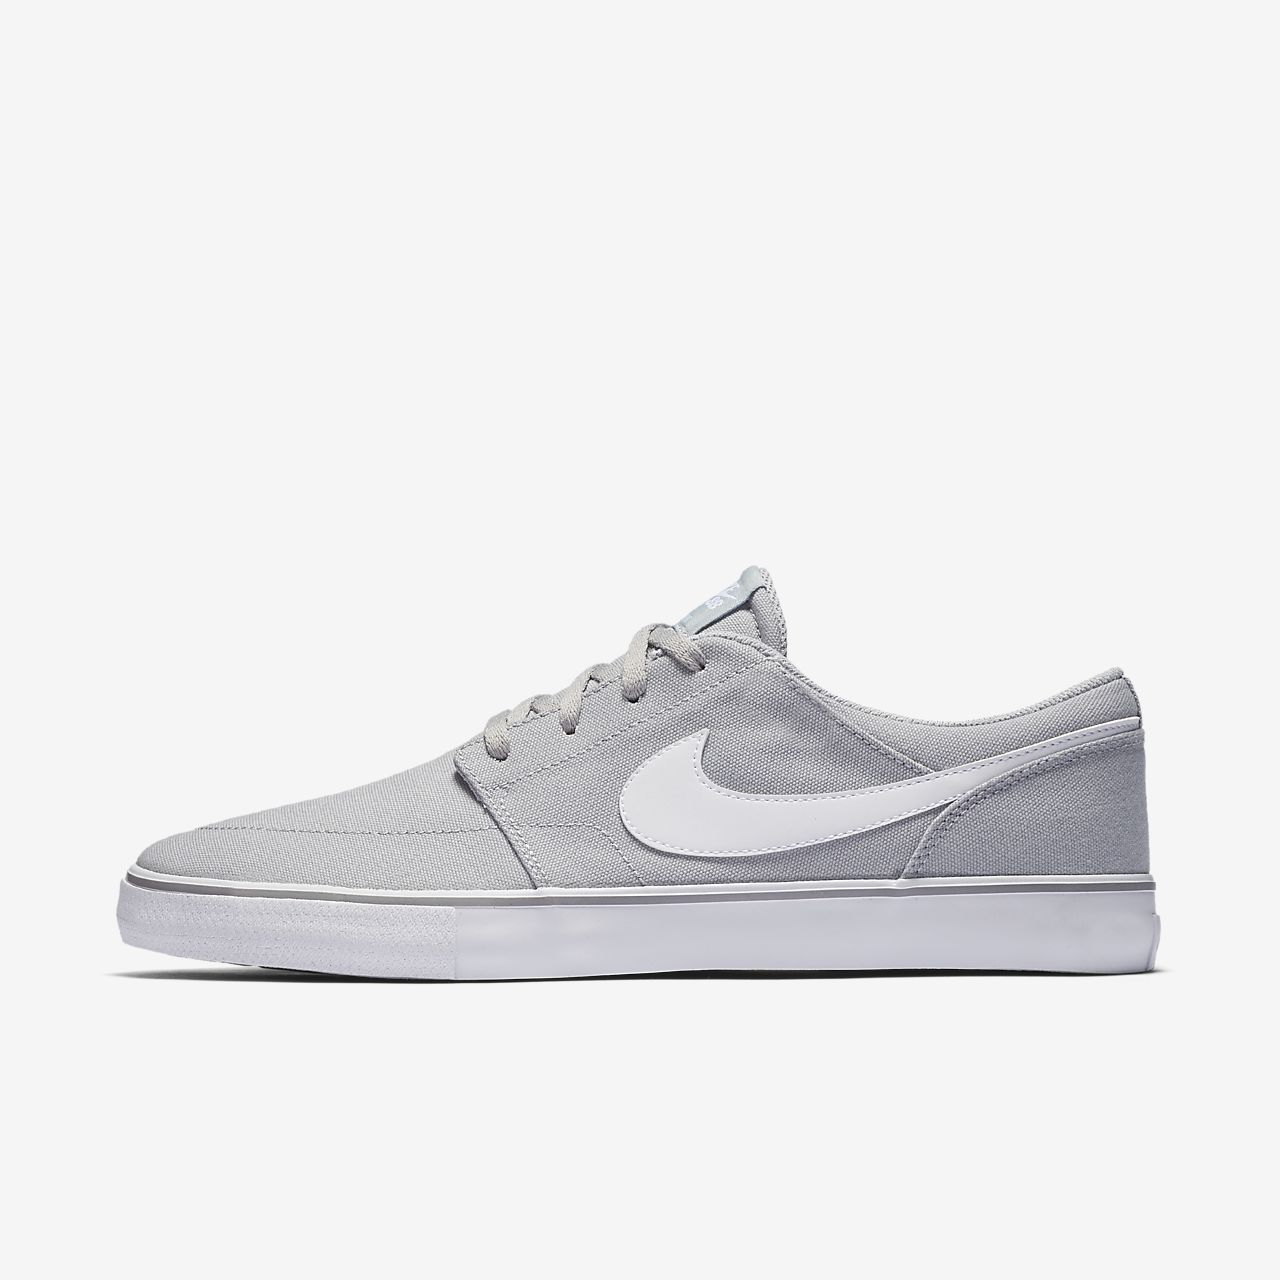 Nike SB Solarsoft Portmore II Mid Men's Skateboarding Shoes Grey/White vZ1347Y